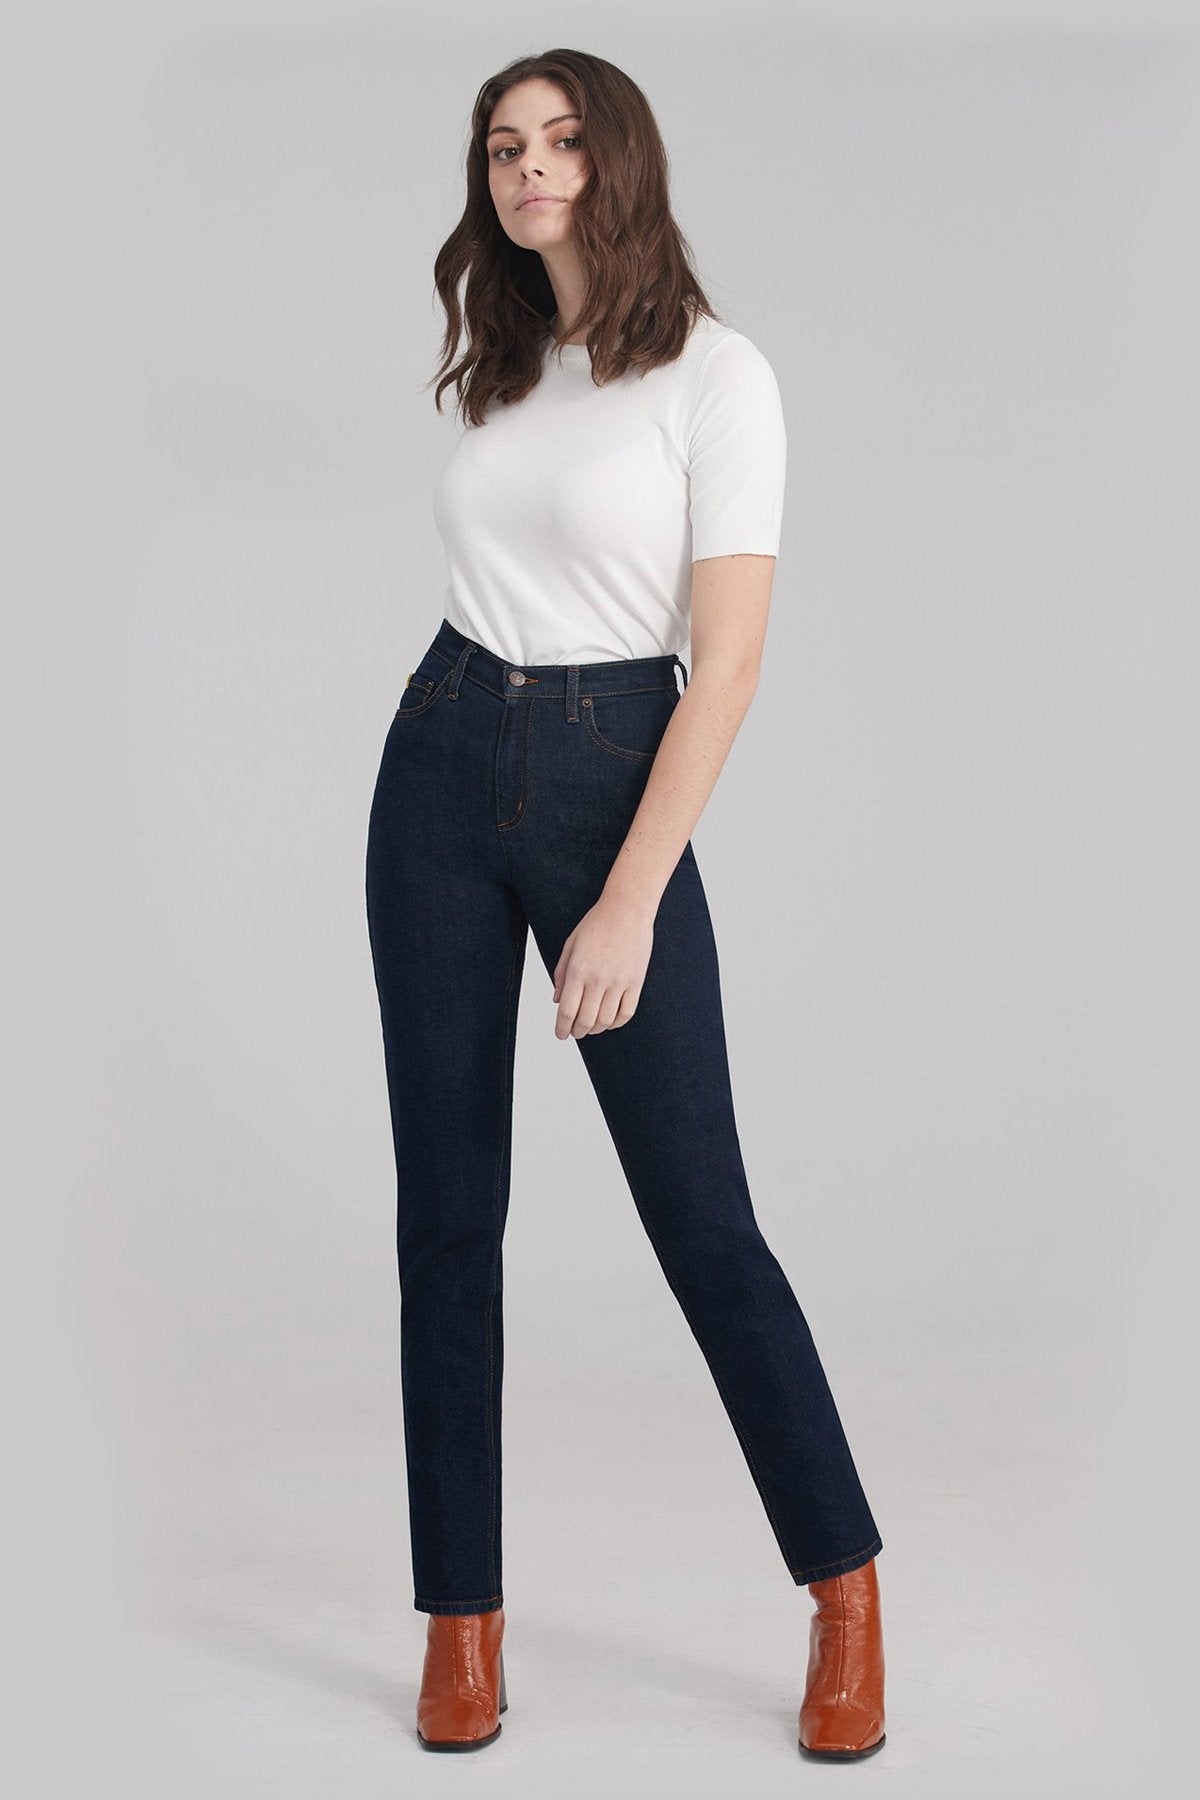 New High Rise Slim Yoga Jean, Fearless, high waist, slim fit, 30 inch inseam, sizes 24-34, made in Canada